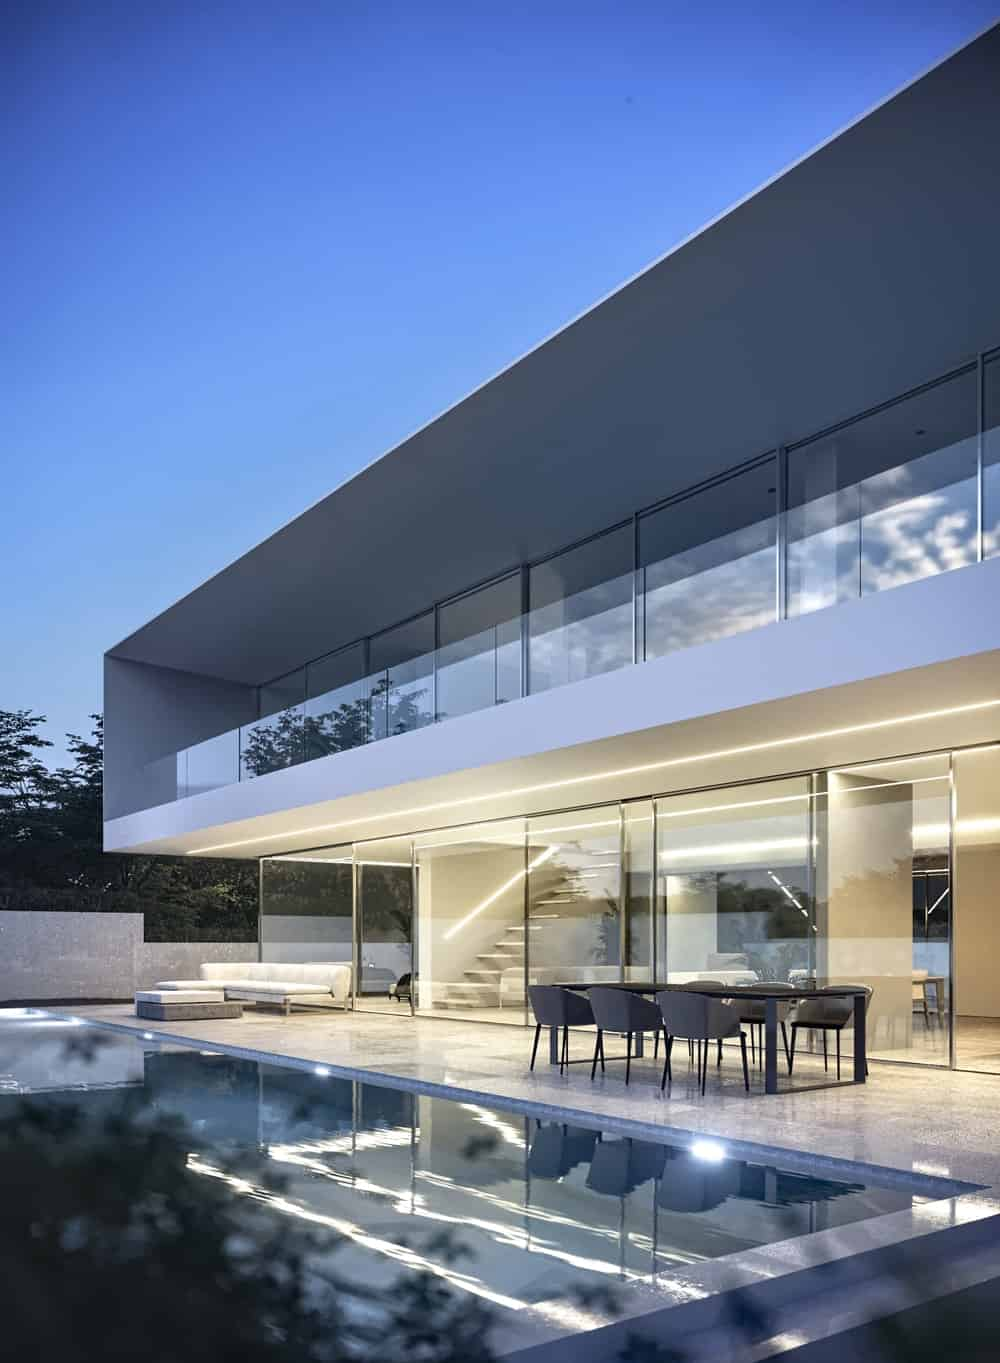 This is a close look at the back of the house feasturing an unlit second level balcony making the glass railings stand out. This view also shows the interiors of the house.